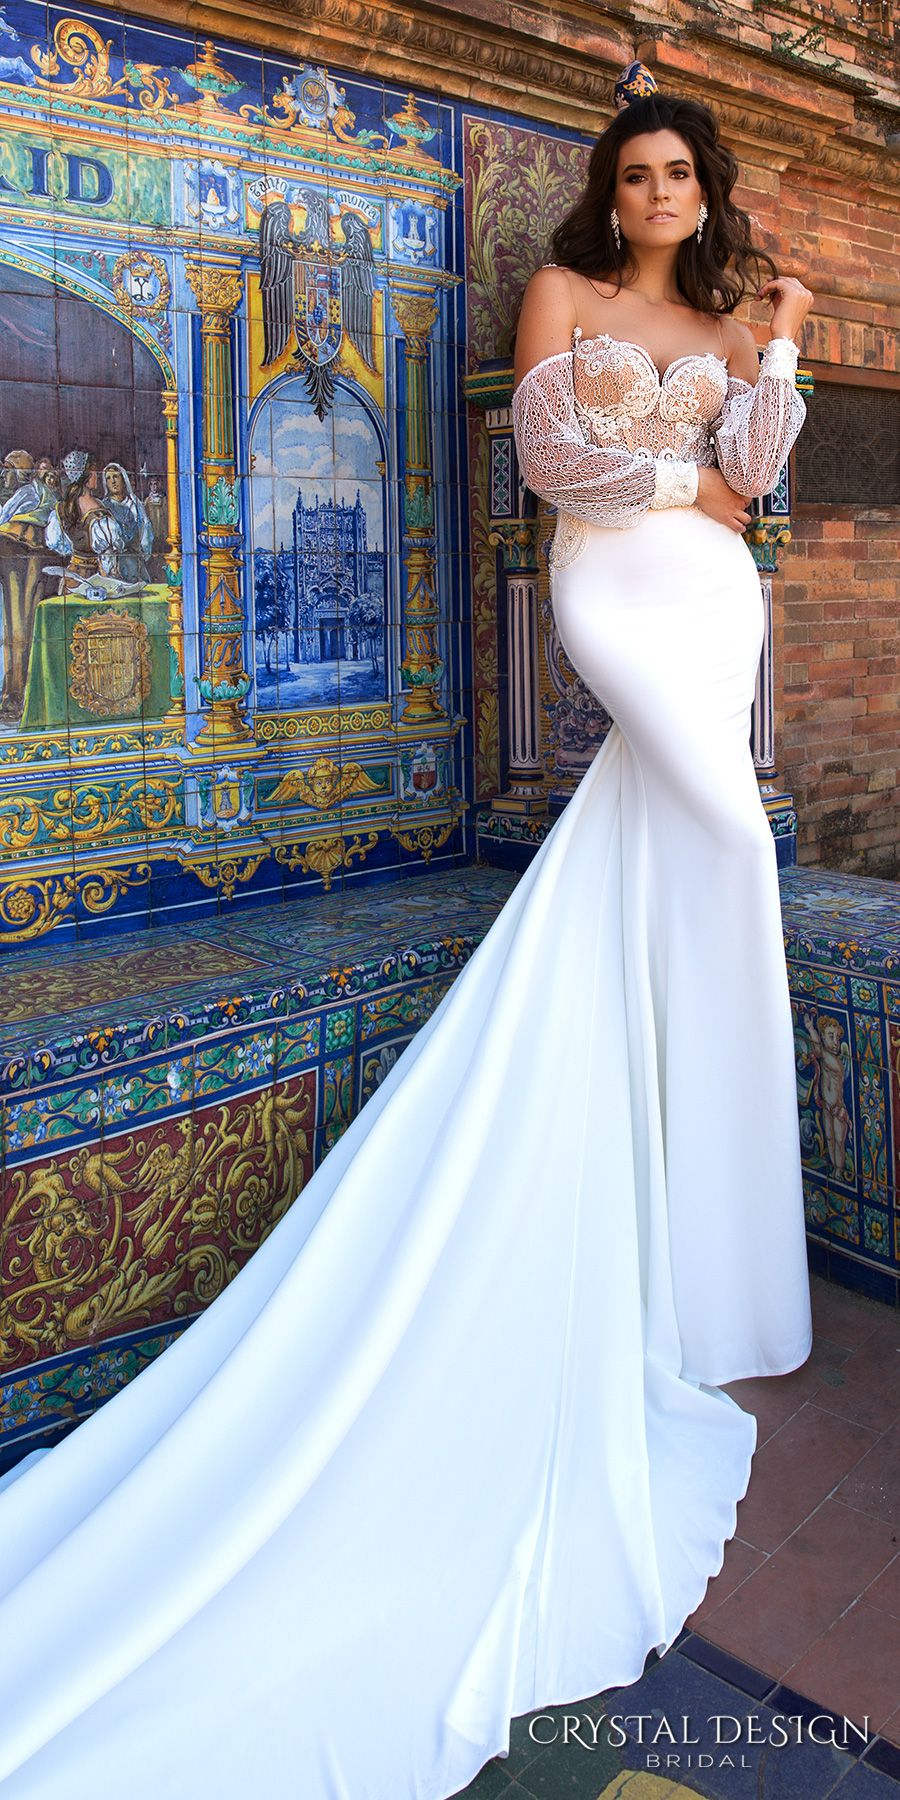 Beautiful wedding dresses from the crystal design collection